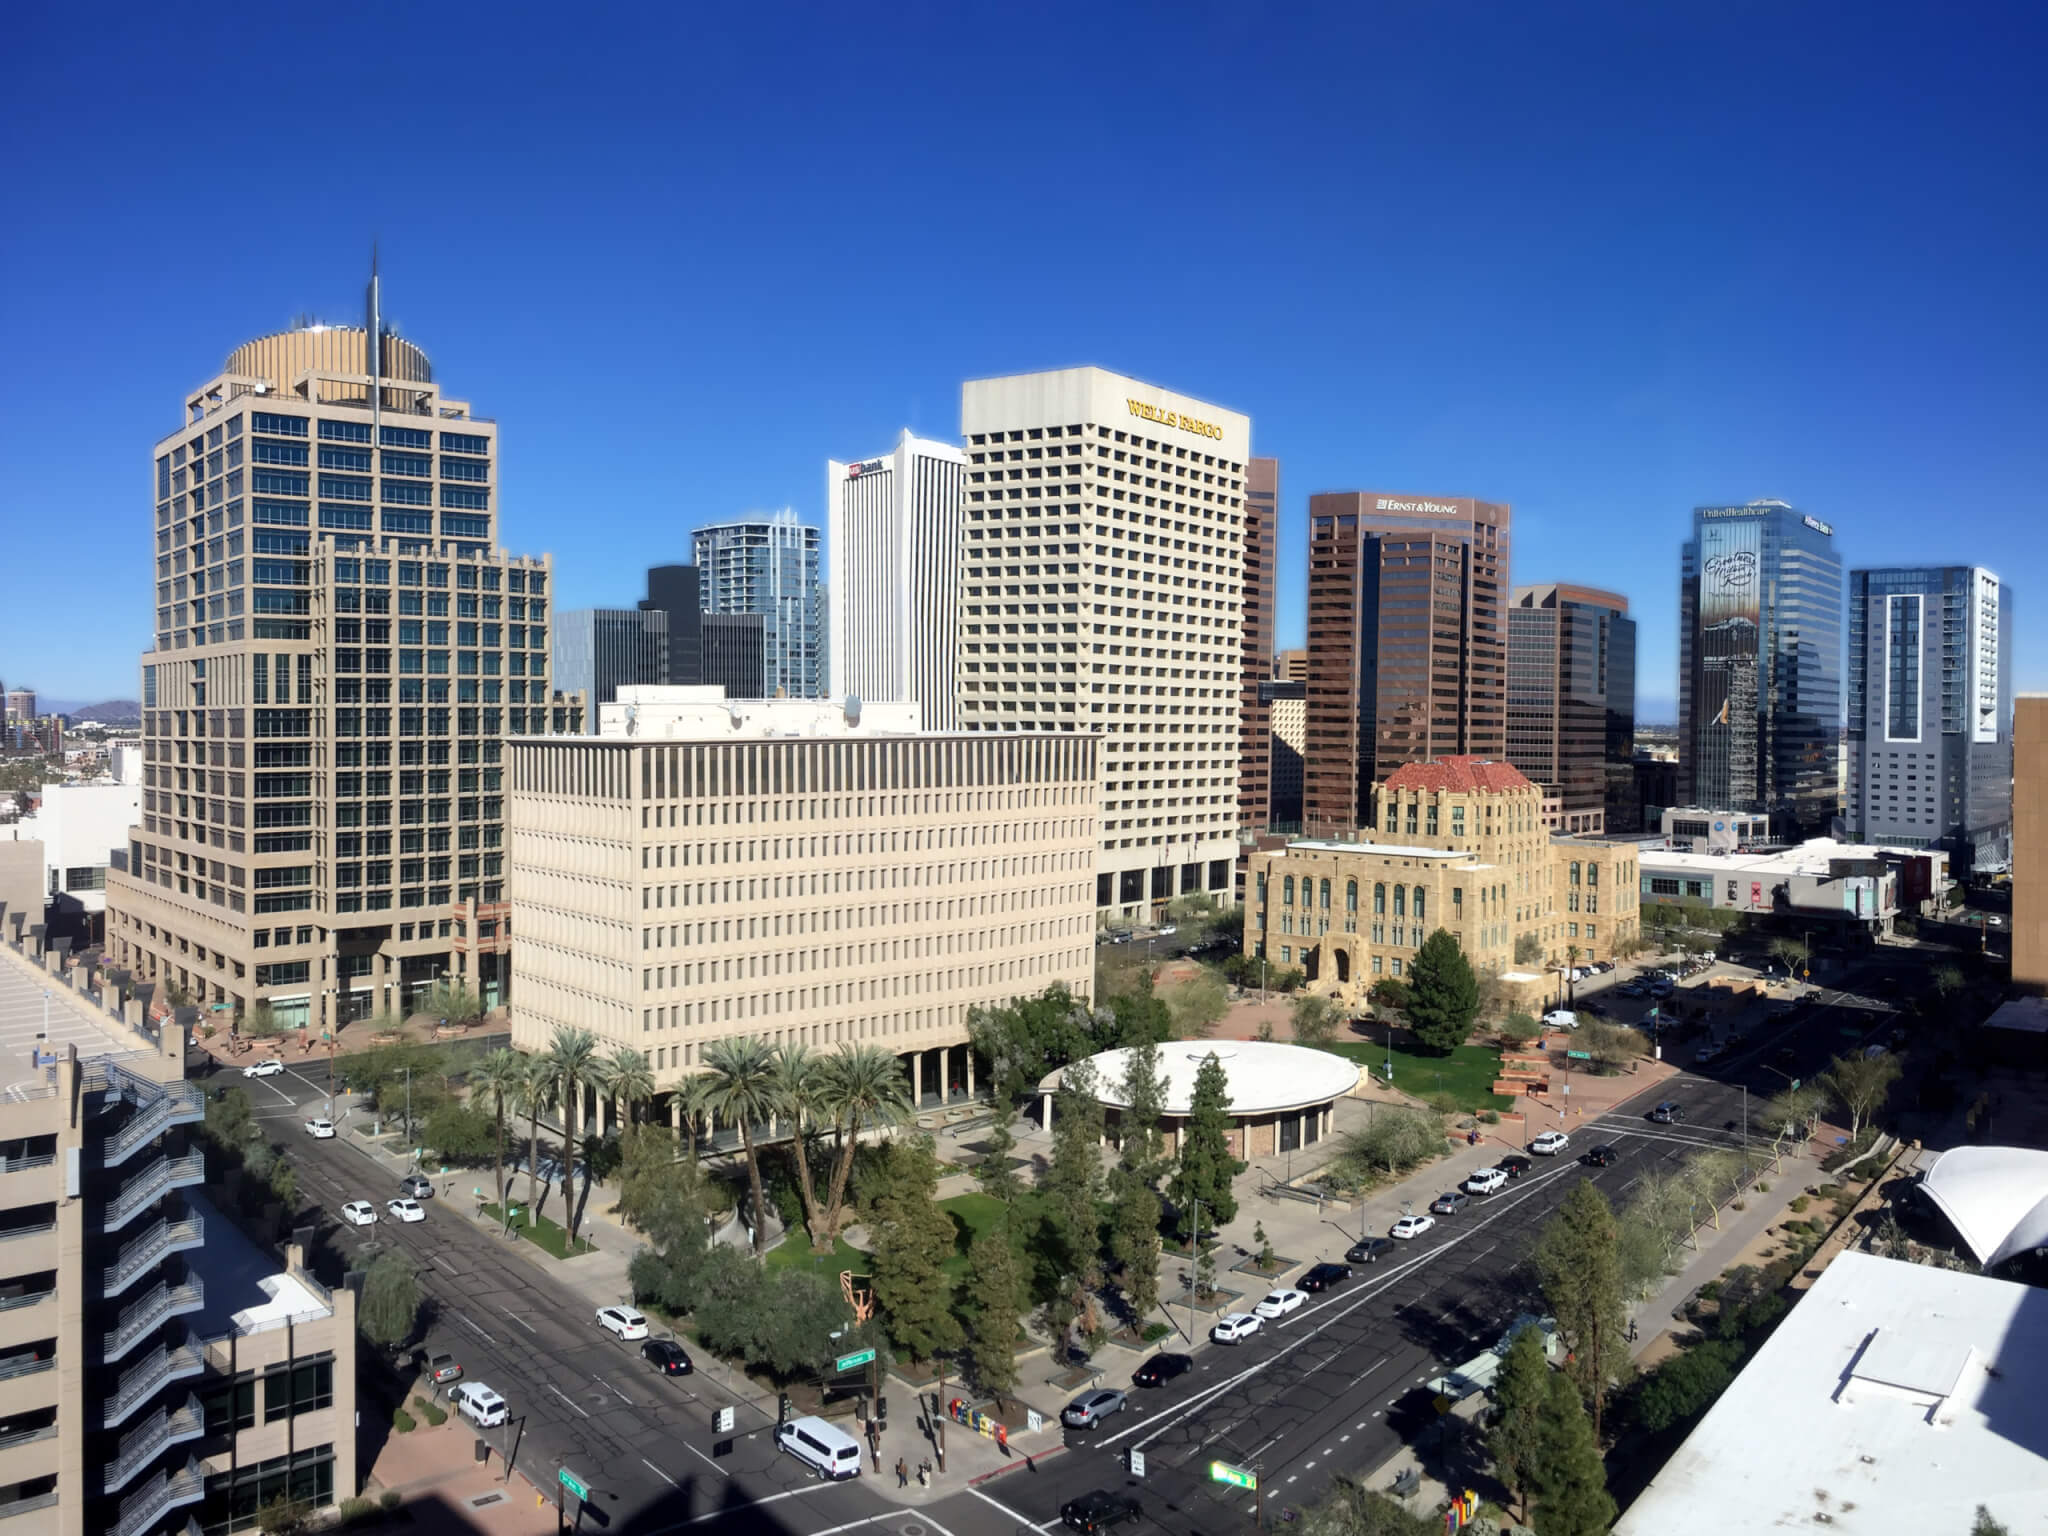 Downtown Phx